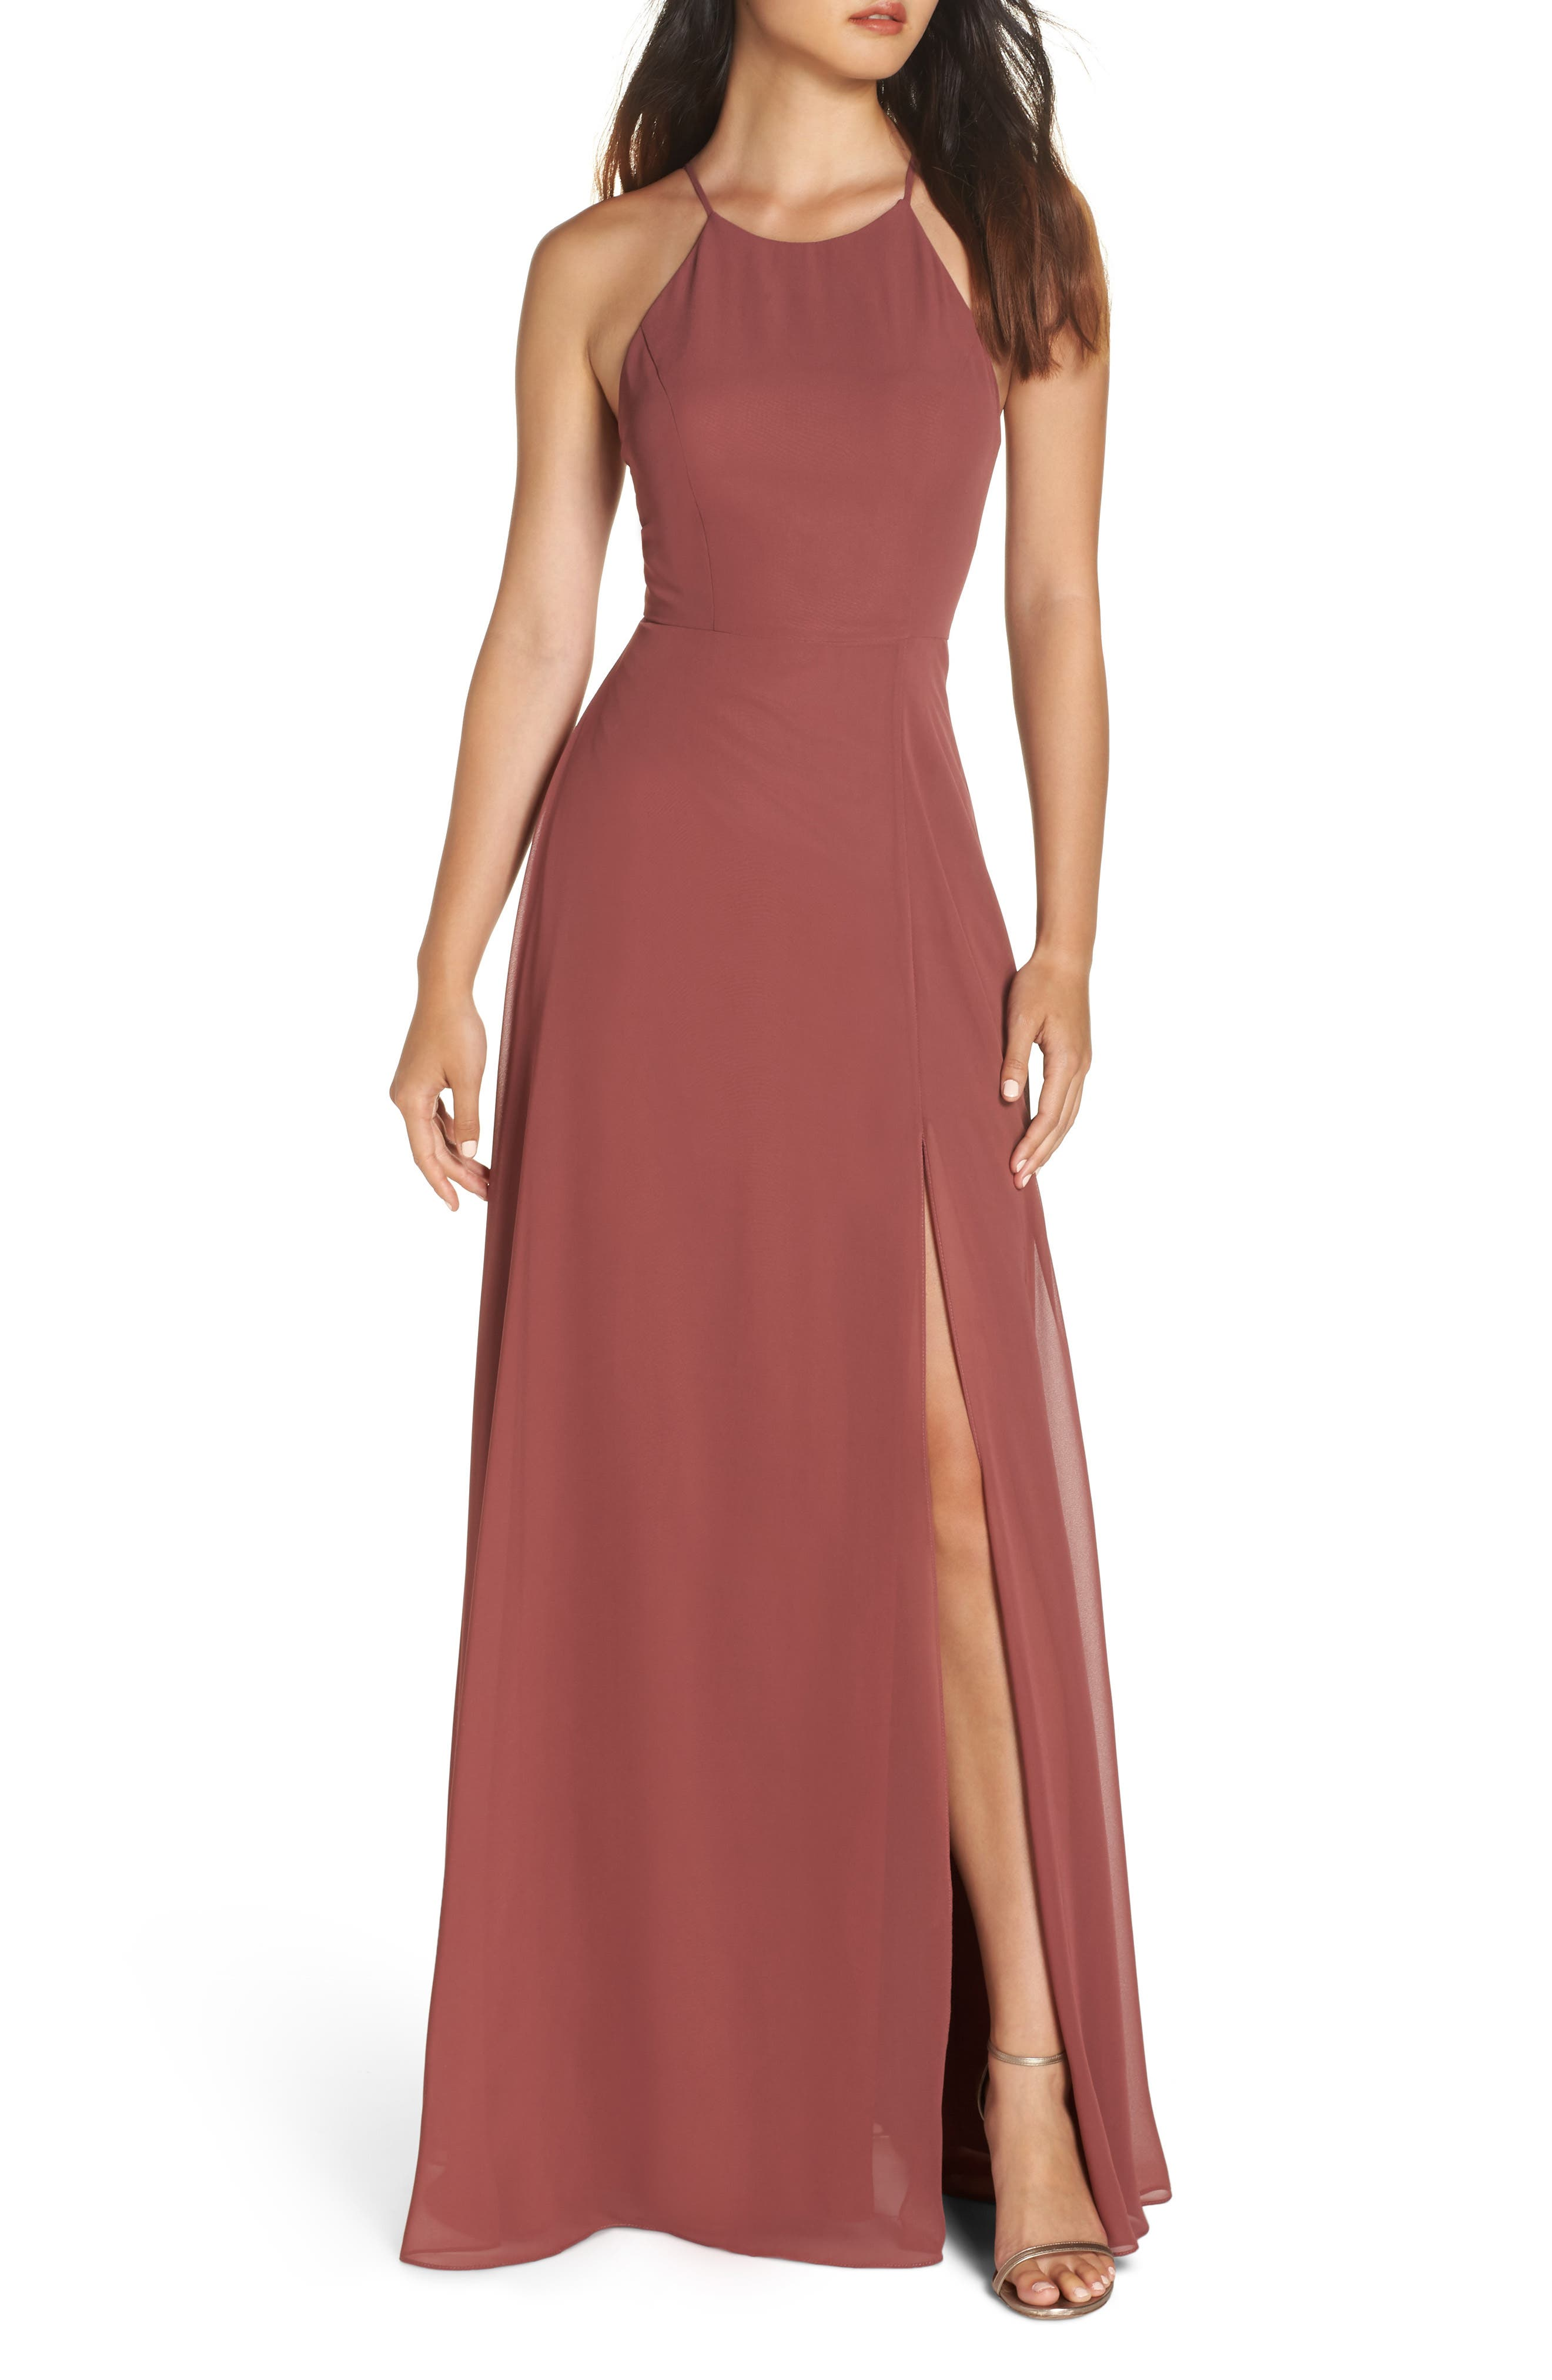 Jenny Yoo Kayla A-Line Halter Gown, 8 (similar to 1) - Pink